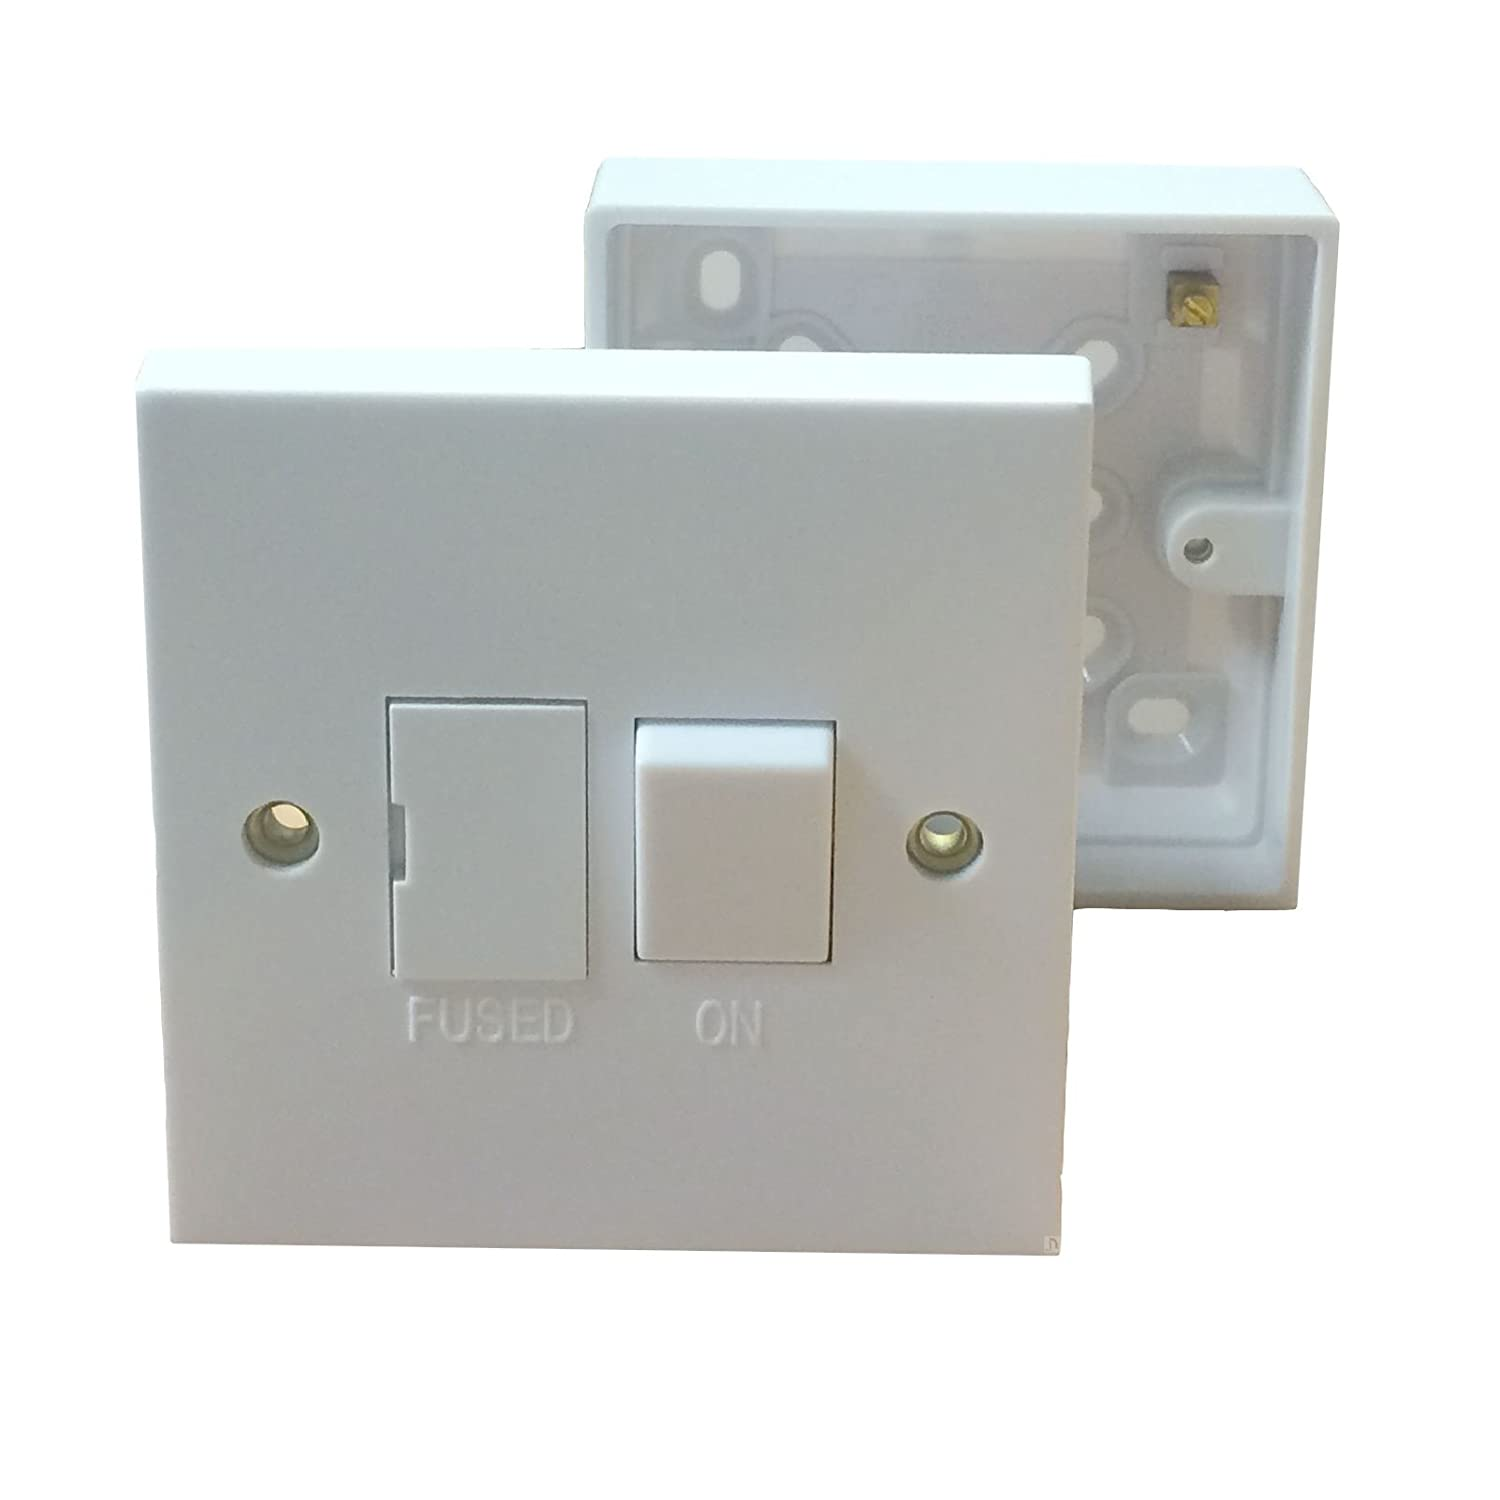 Fused Switch Box - Get Wiring Diagram on